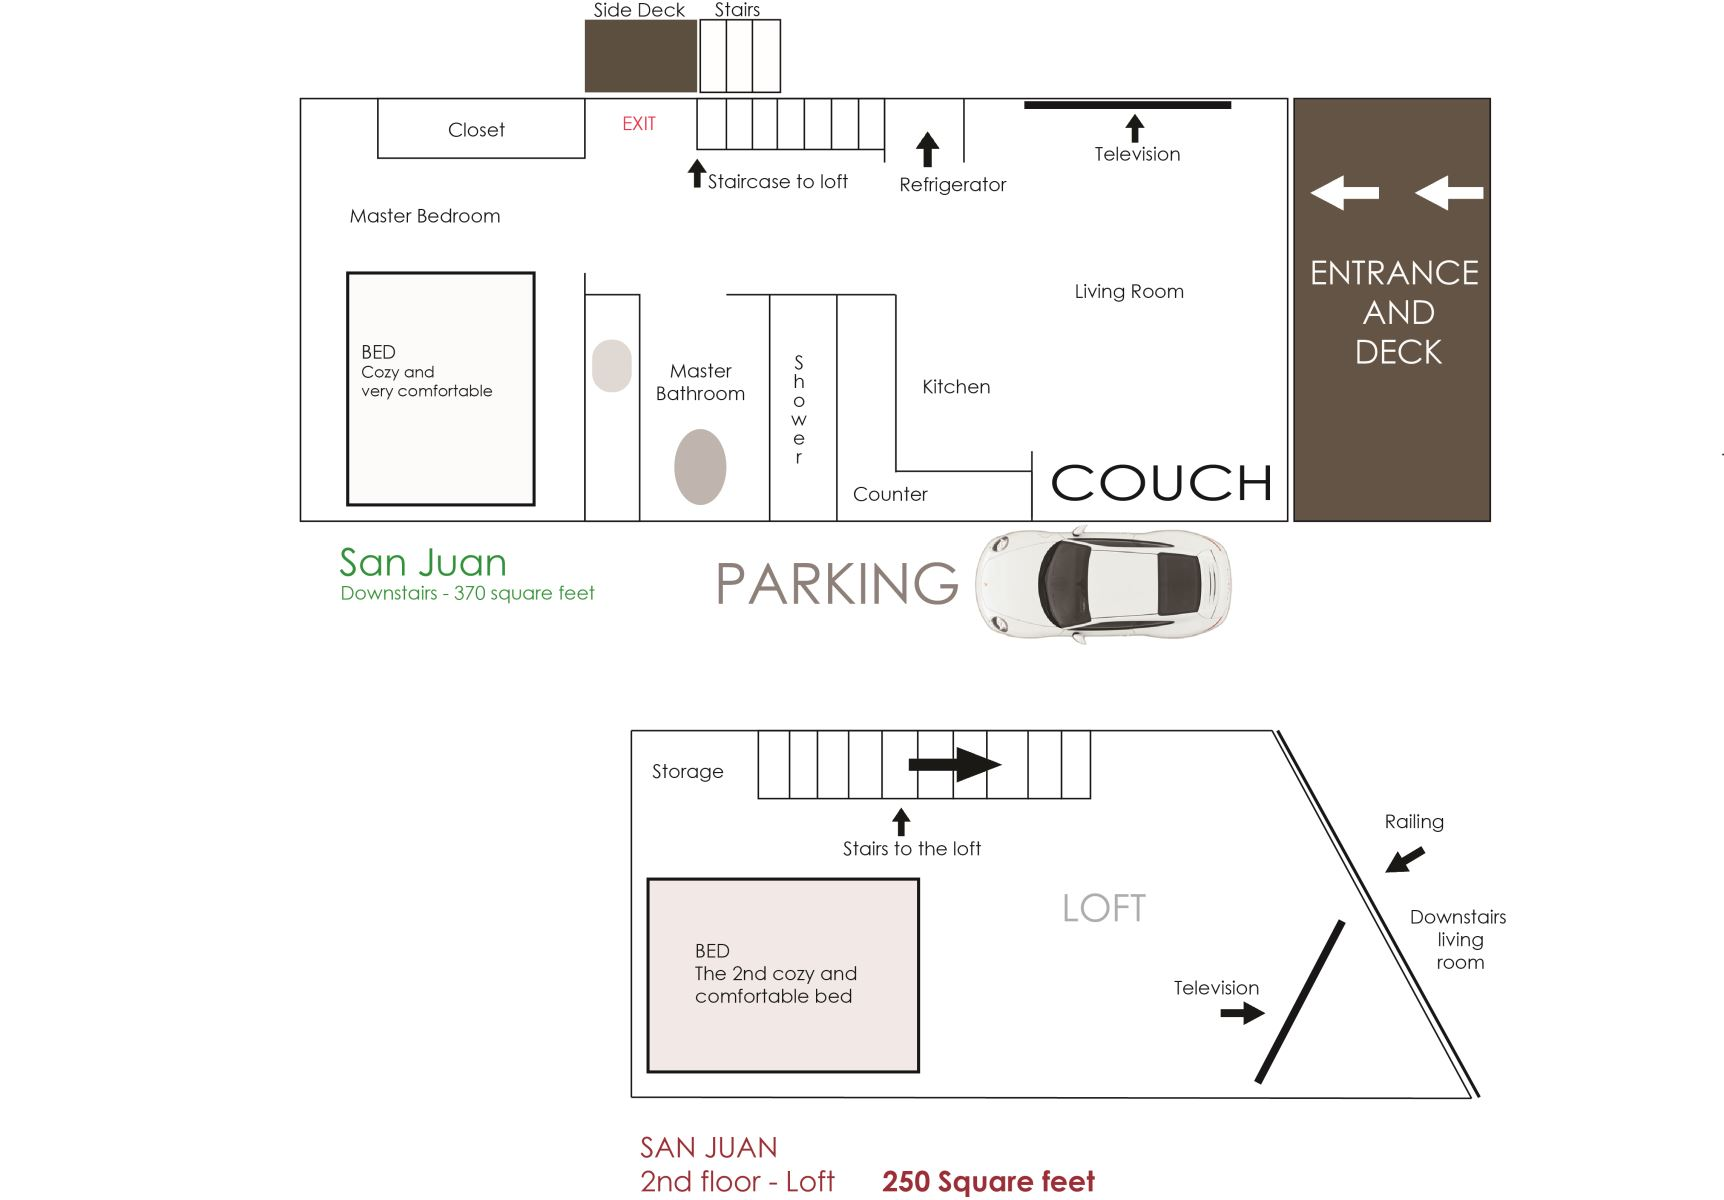 Floor Plan for San Juan - Fort Bragg California